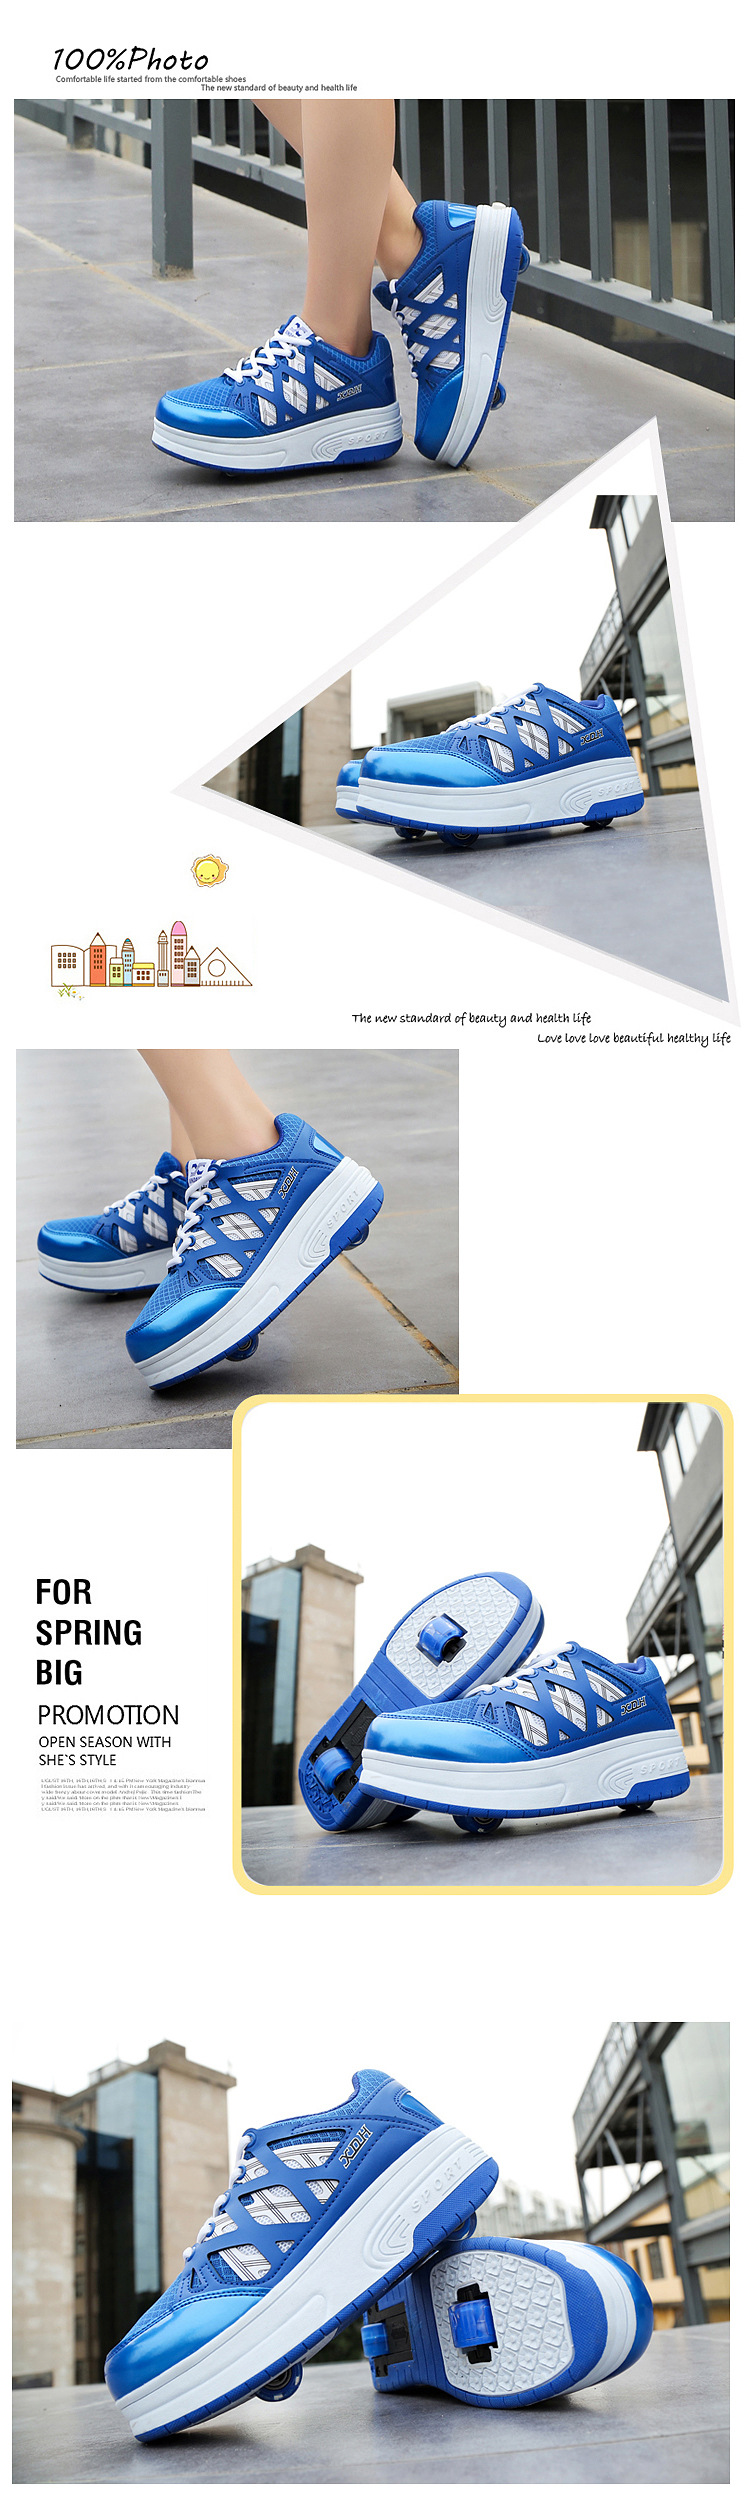 2018 New Boys Girls Heeky Sneakers with Wheels Kids Roller Skate Shoes Children Brand Fashion Wheels Shoes